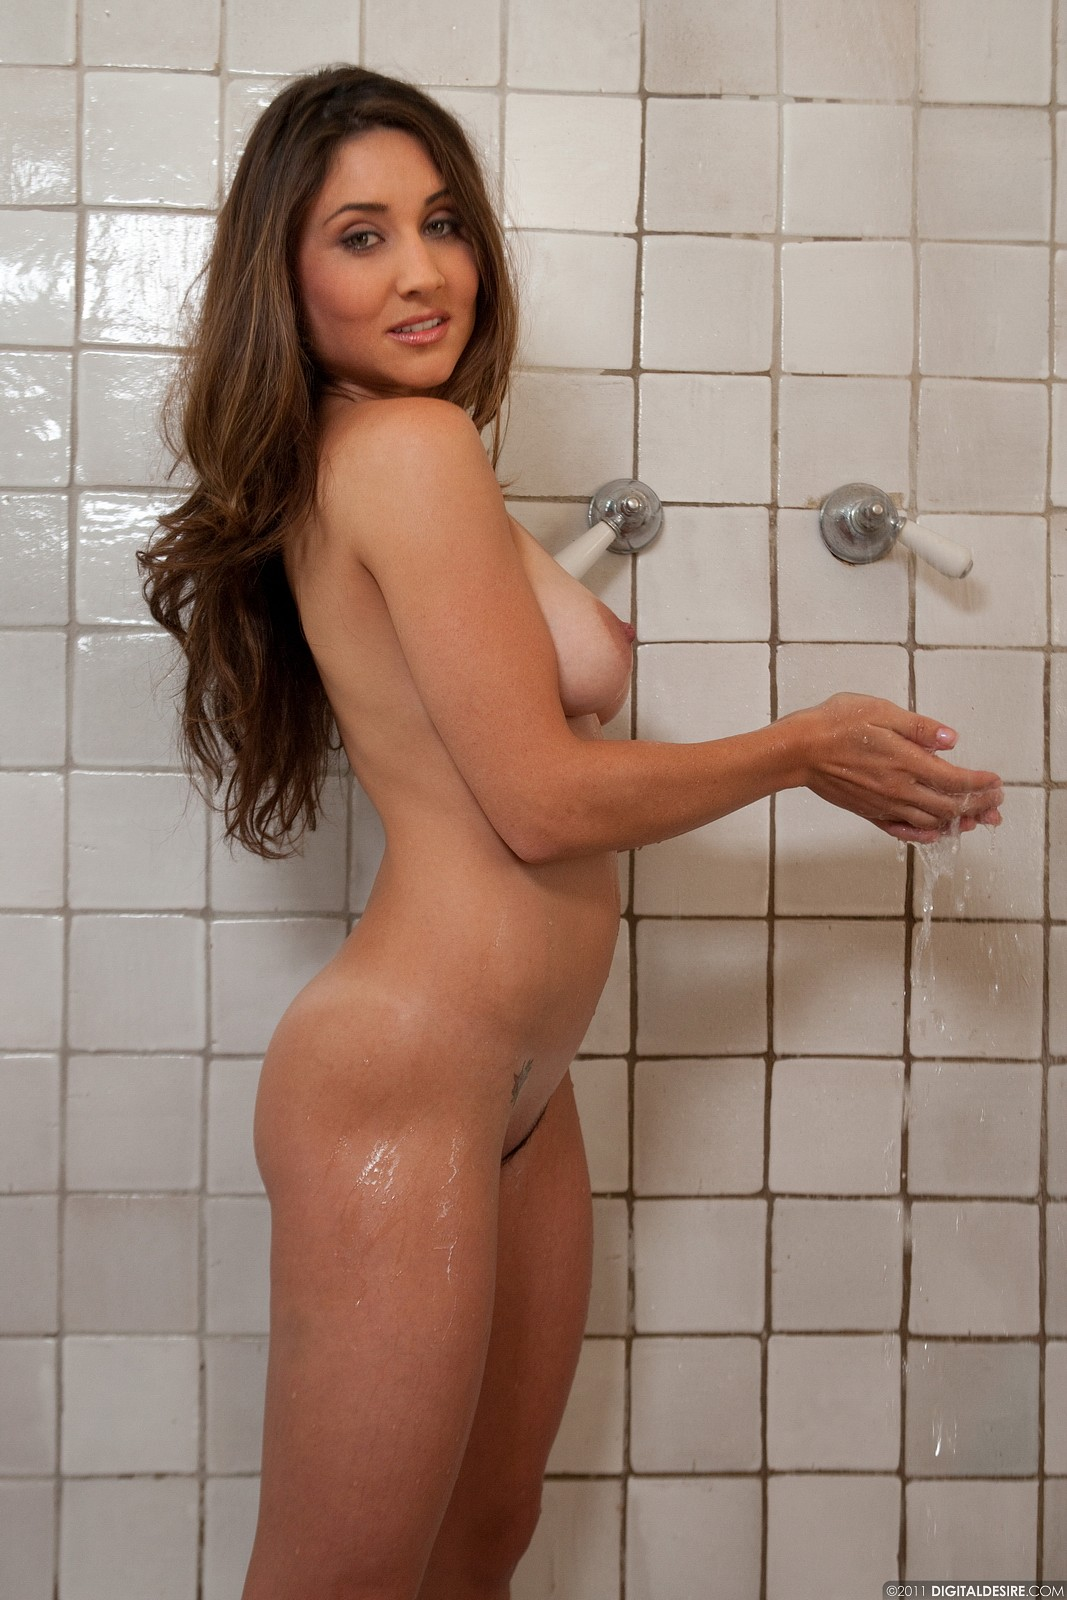 Apologise, digital desire aubrey taylor shower video duly